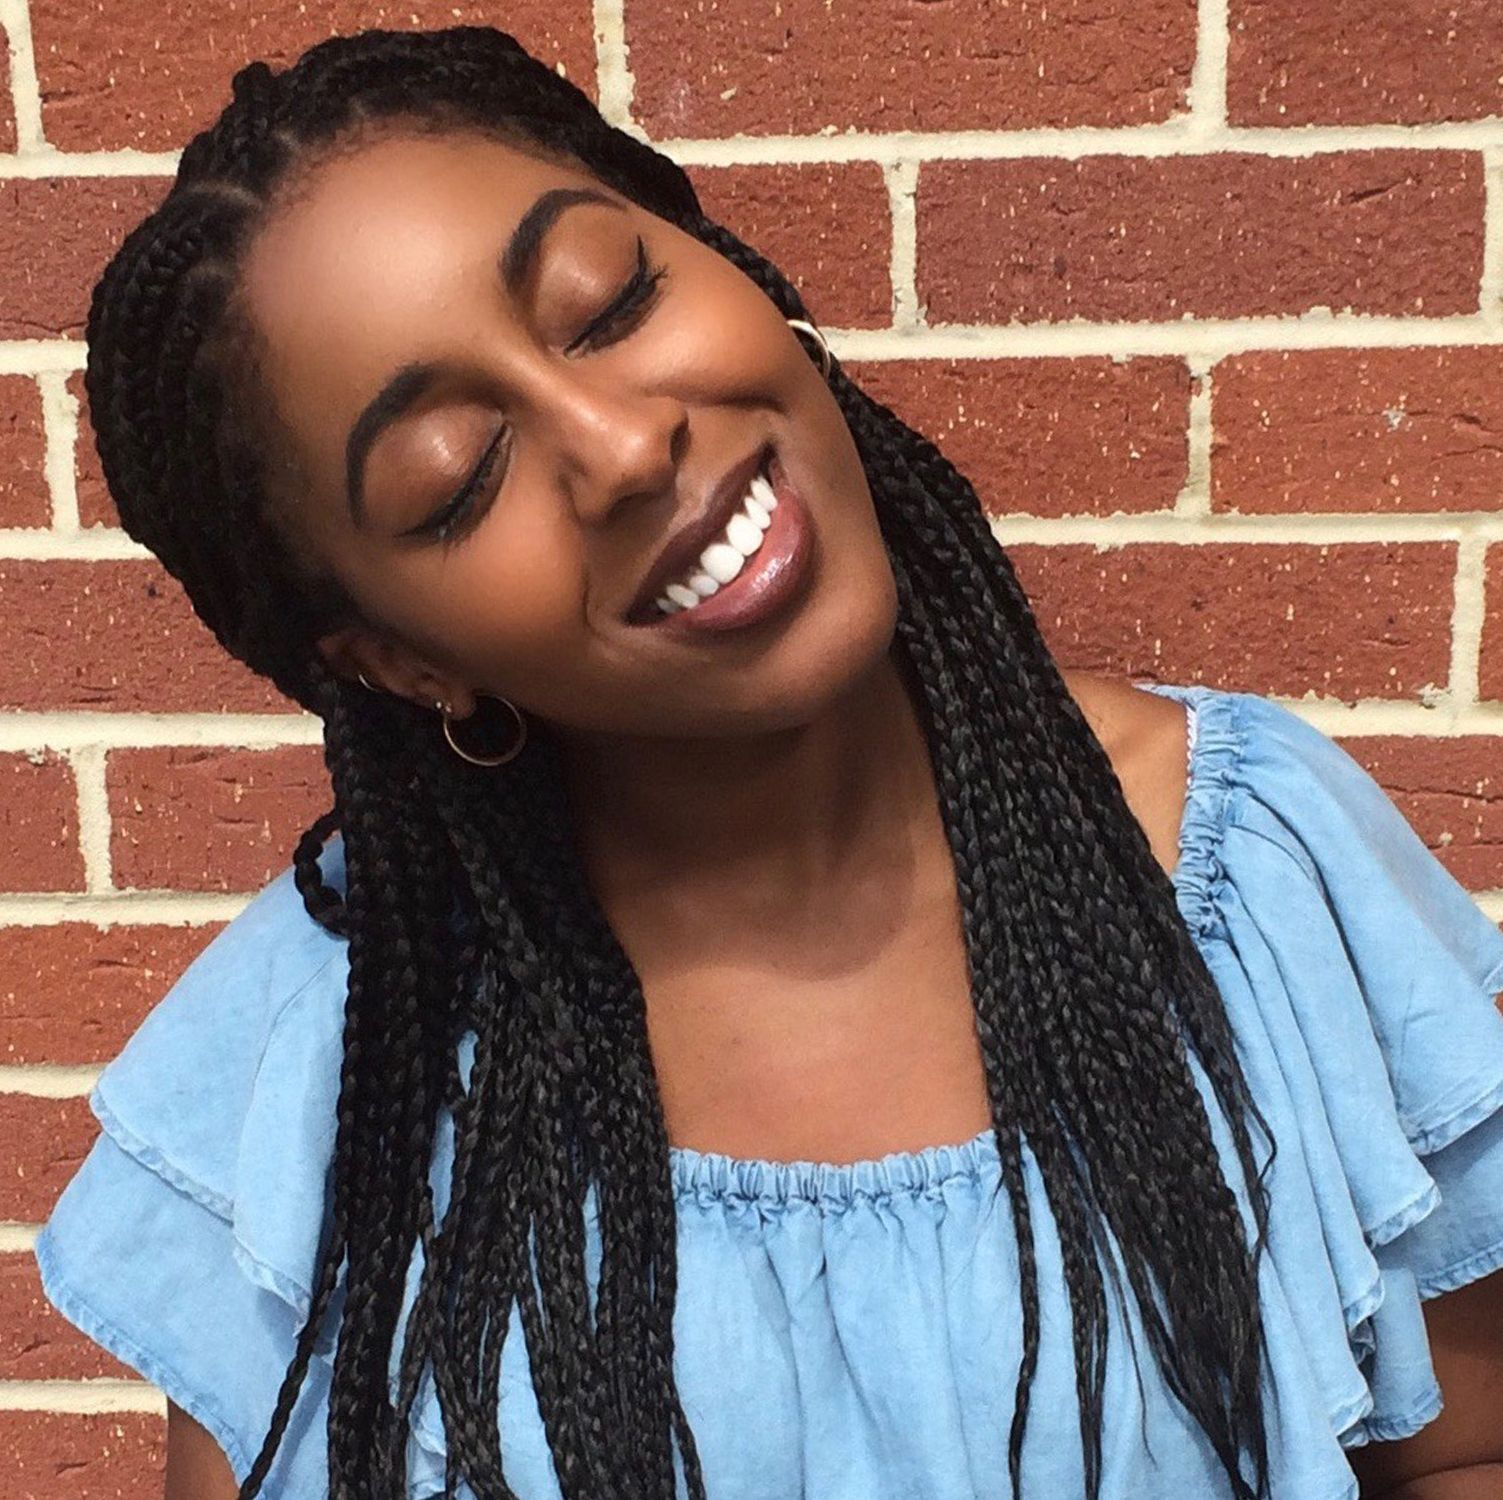 Hair Braids Advice 9 To Know About Braiding Black And Afro Hair